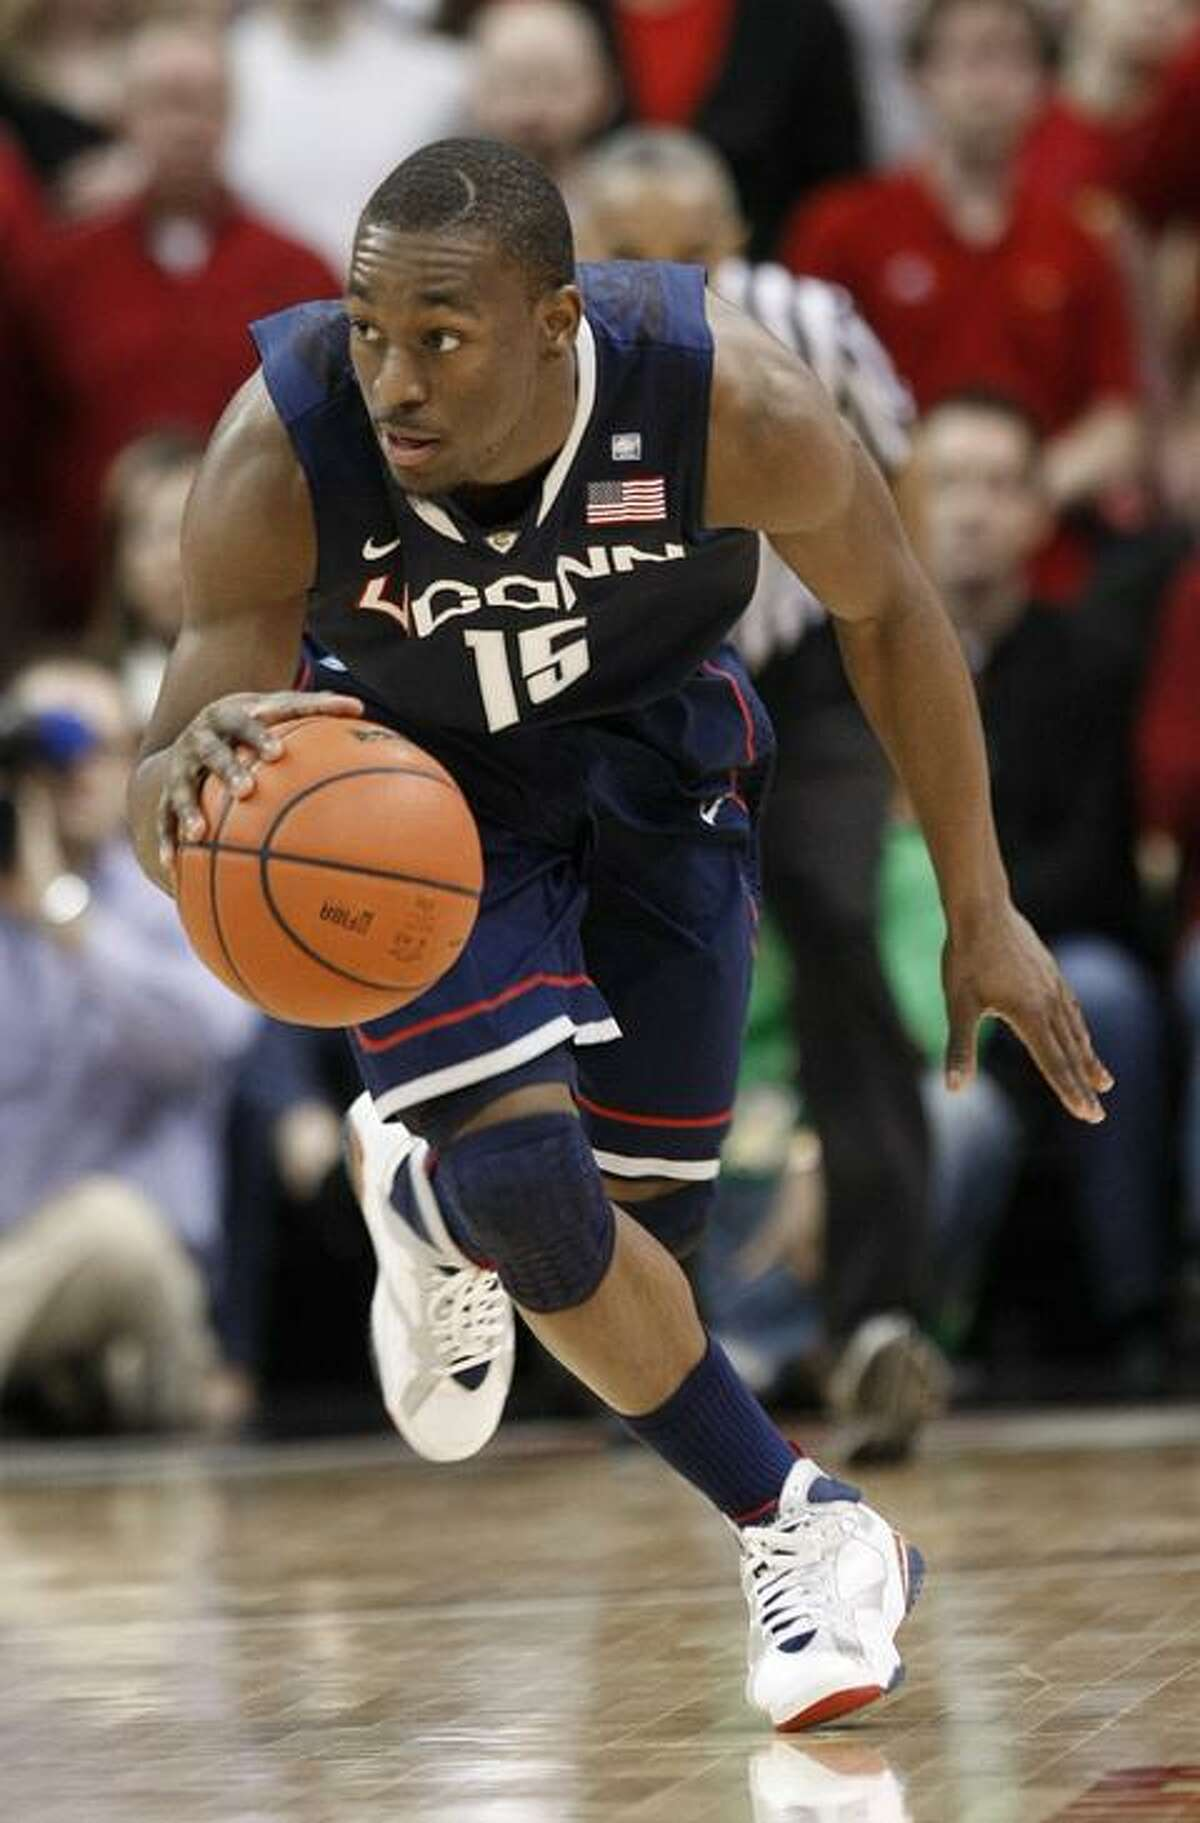 Connecticut 's Kemba Walker drives the ball upcourt during the first half of their NCAA college basketball game against Louisville in Louisville, Ky., Friday, Feb. 18, 2011. (AP Photo/Ed Reinke)